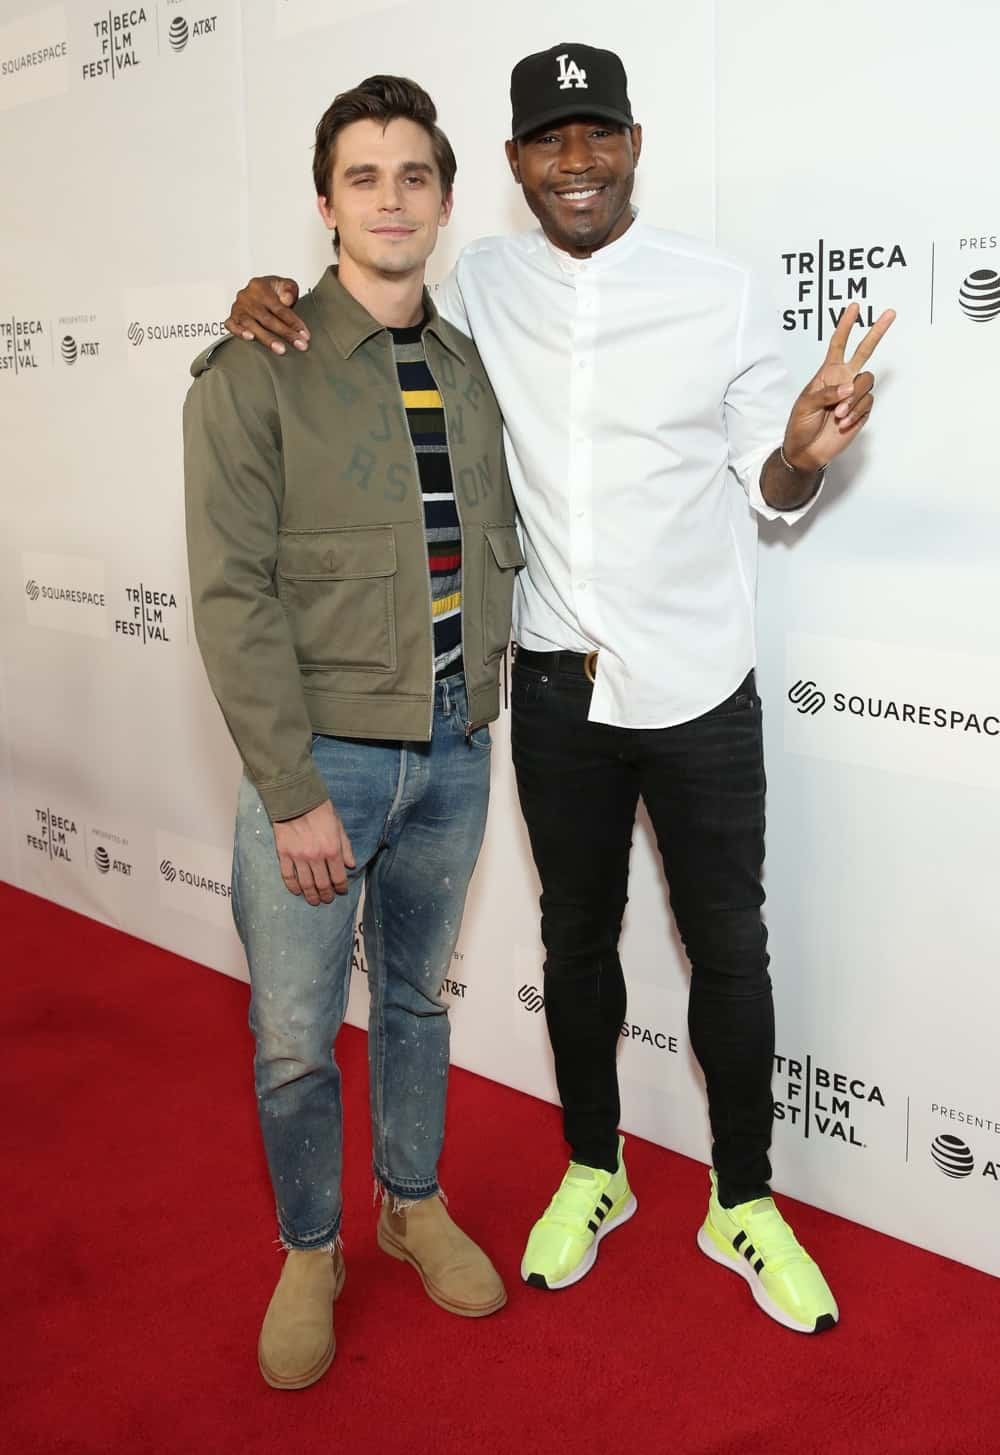 Antoni Porowski and Karamo Brown World Premiere Of 'GAY CHORUS DEEP SOUTH' Documentary, Developed And Produced By Airbnb At The 2019 Tribeca Film Festival